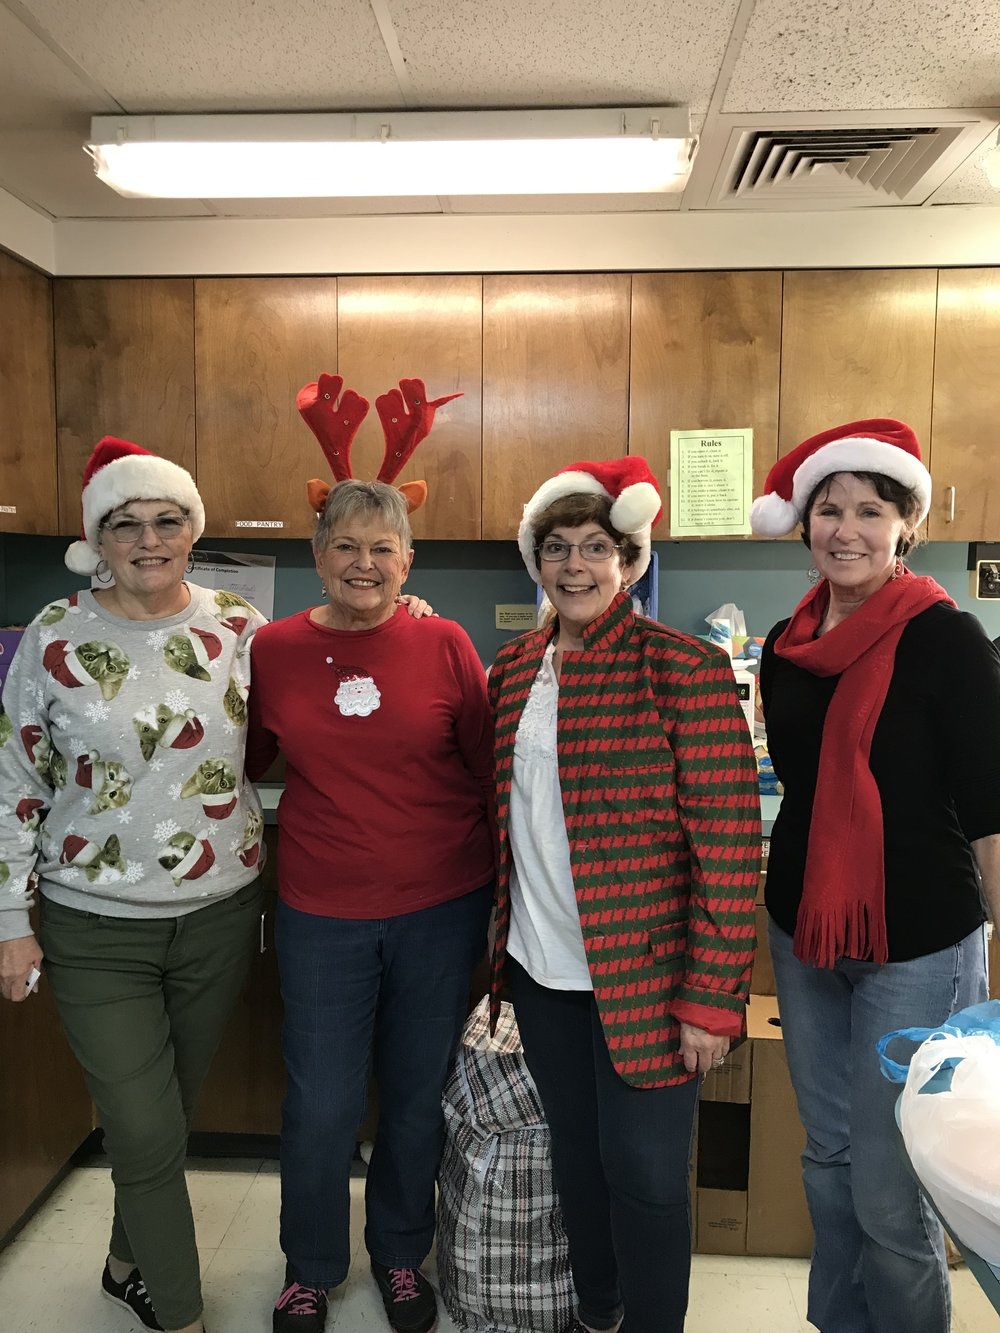 Our Pantry volunteers - some of the hardest working Angels around